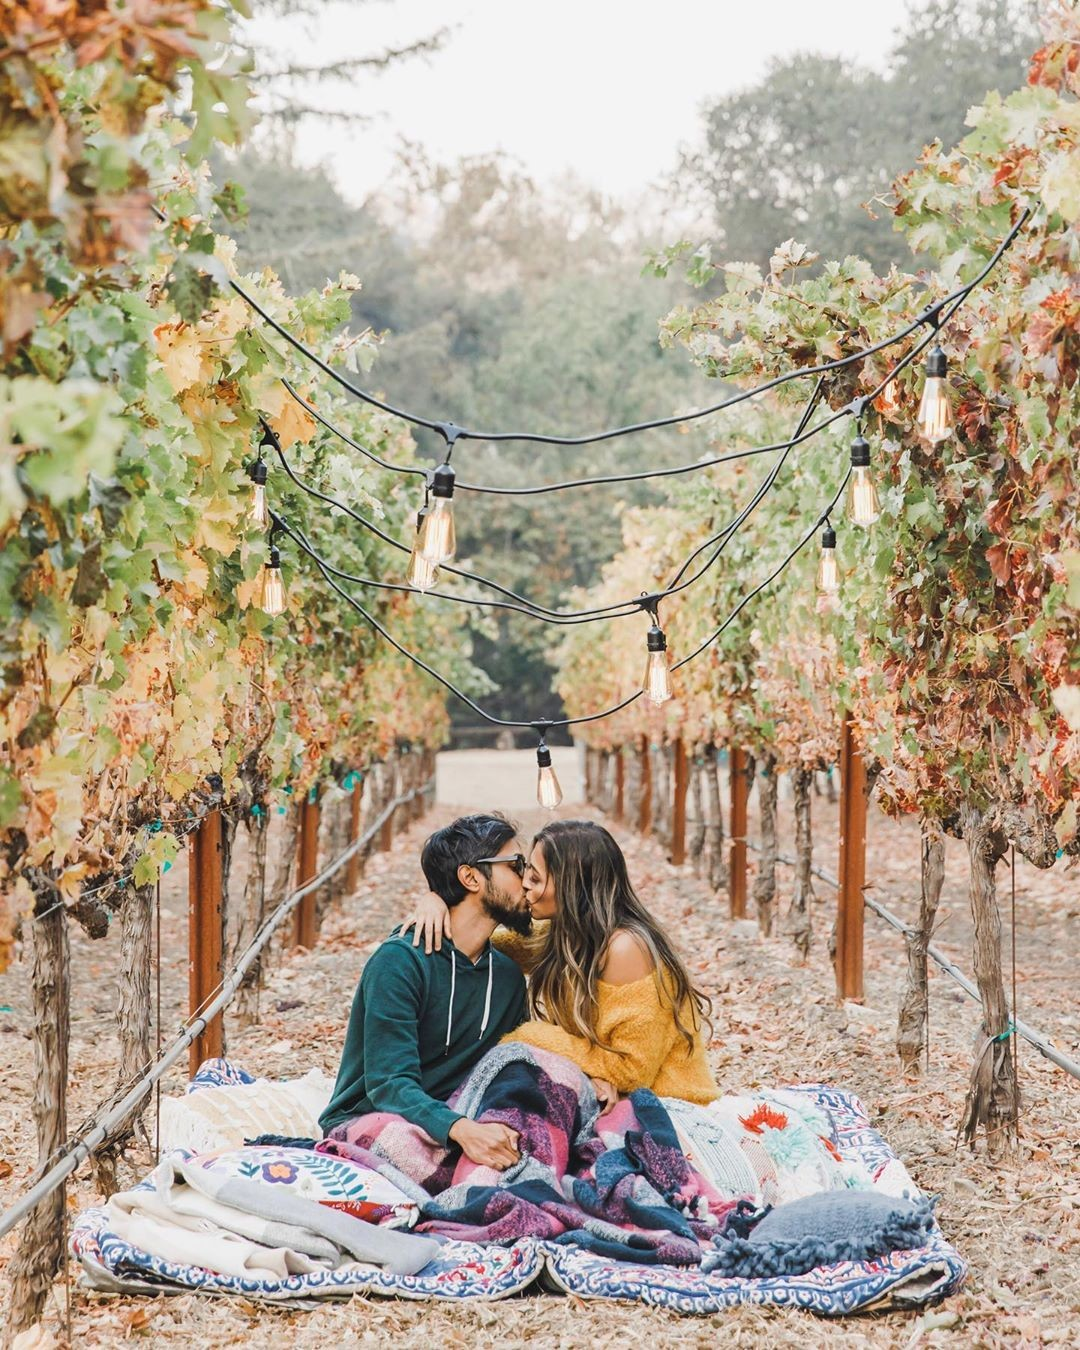 ✨🍂 Falling in love with Fall, and with this adorable set up by